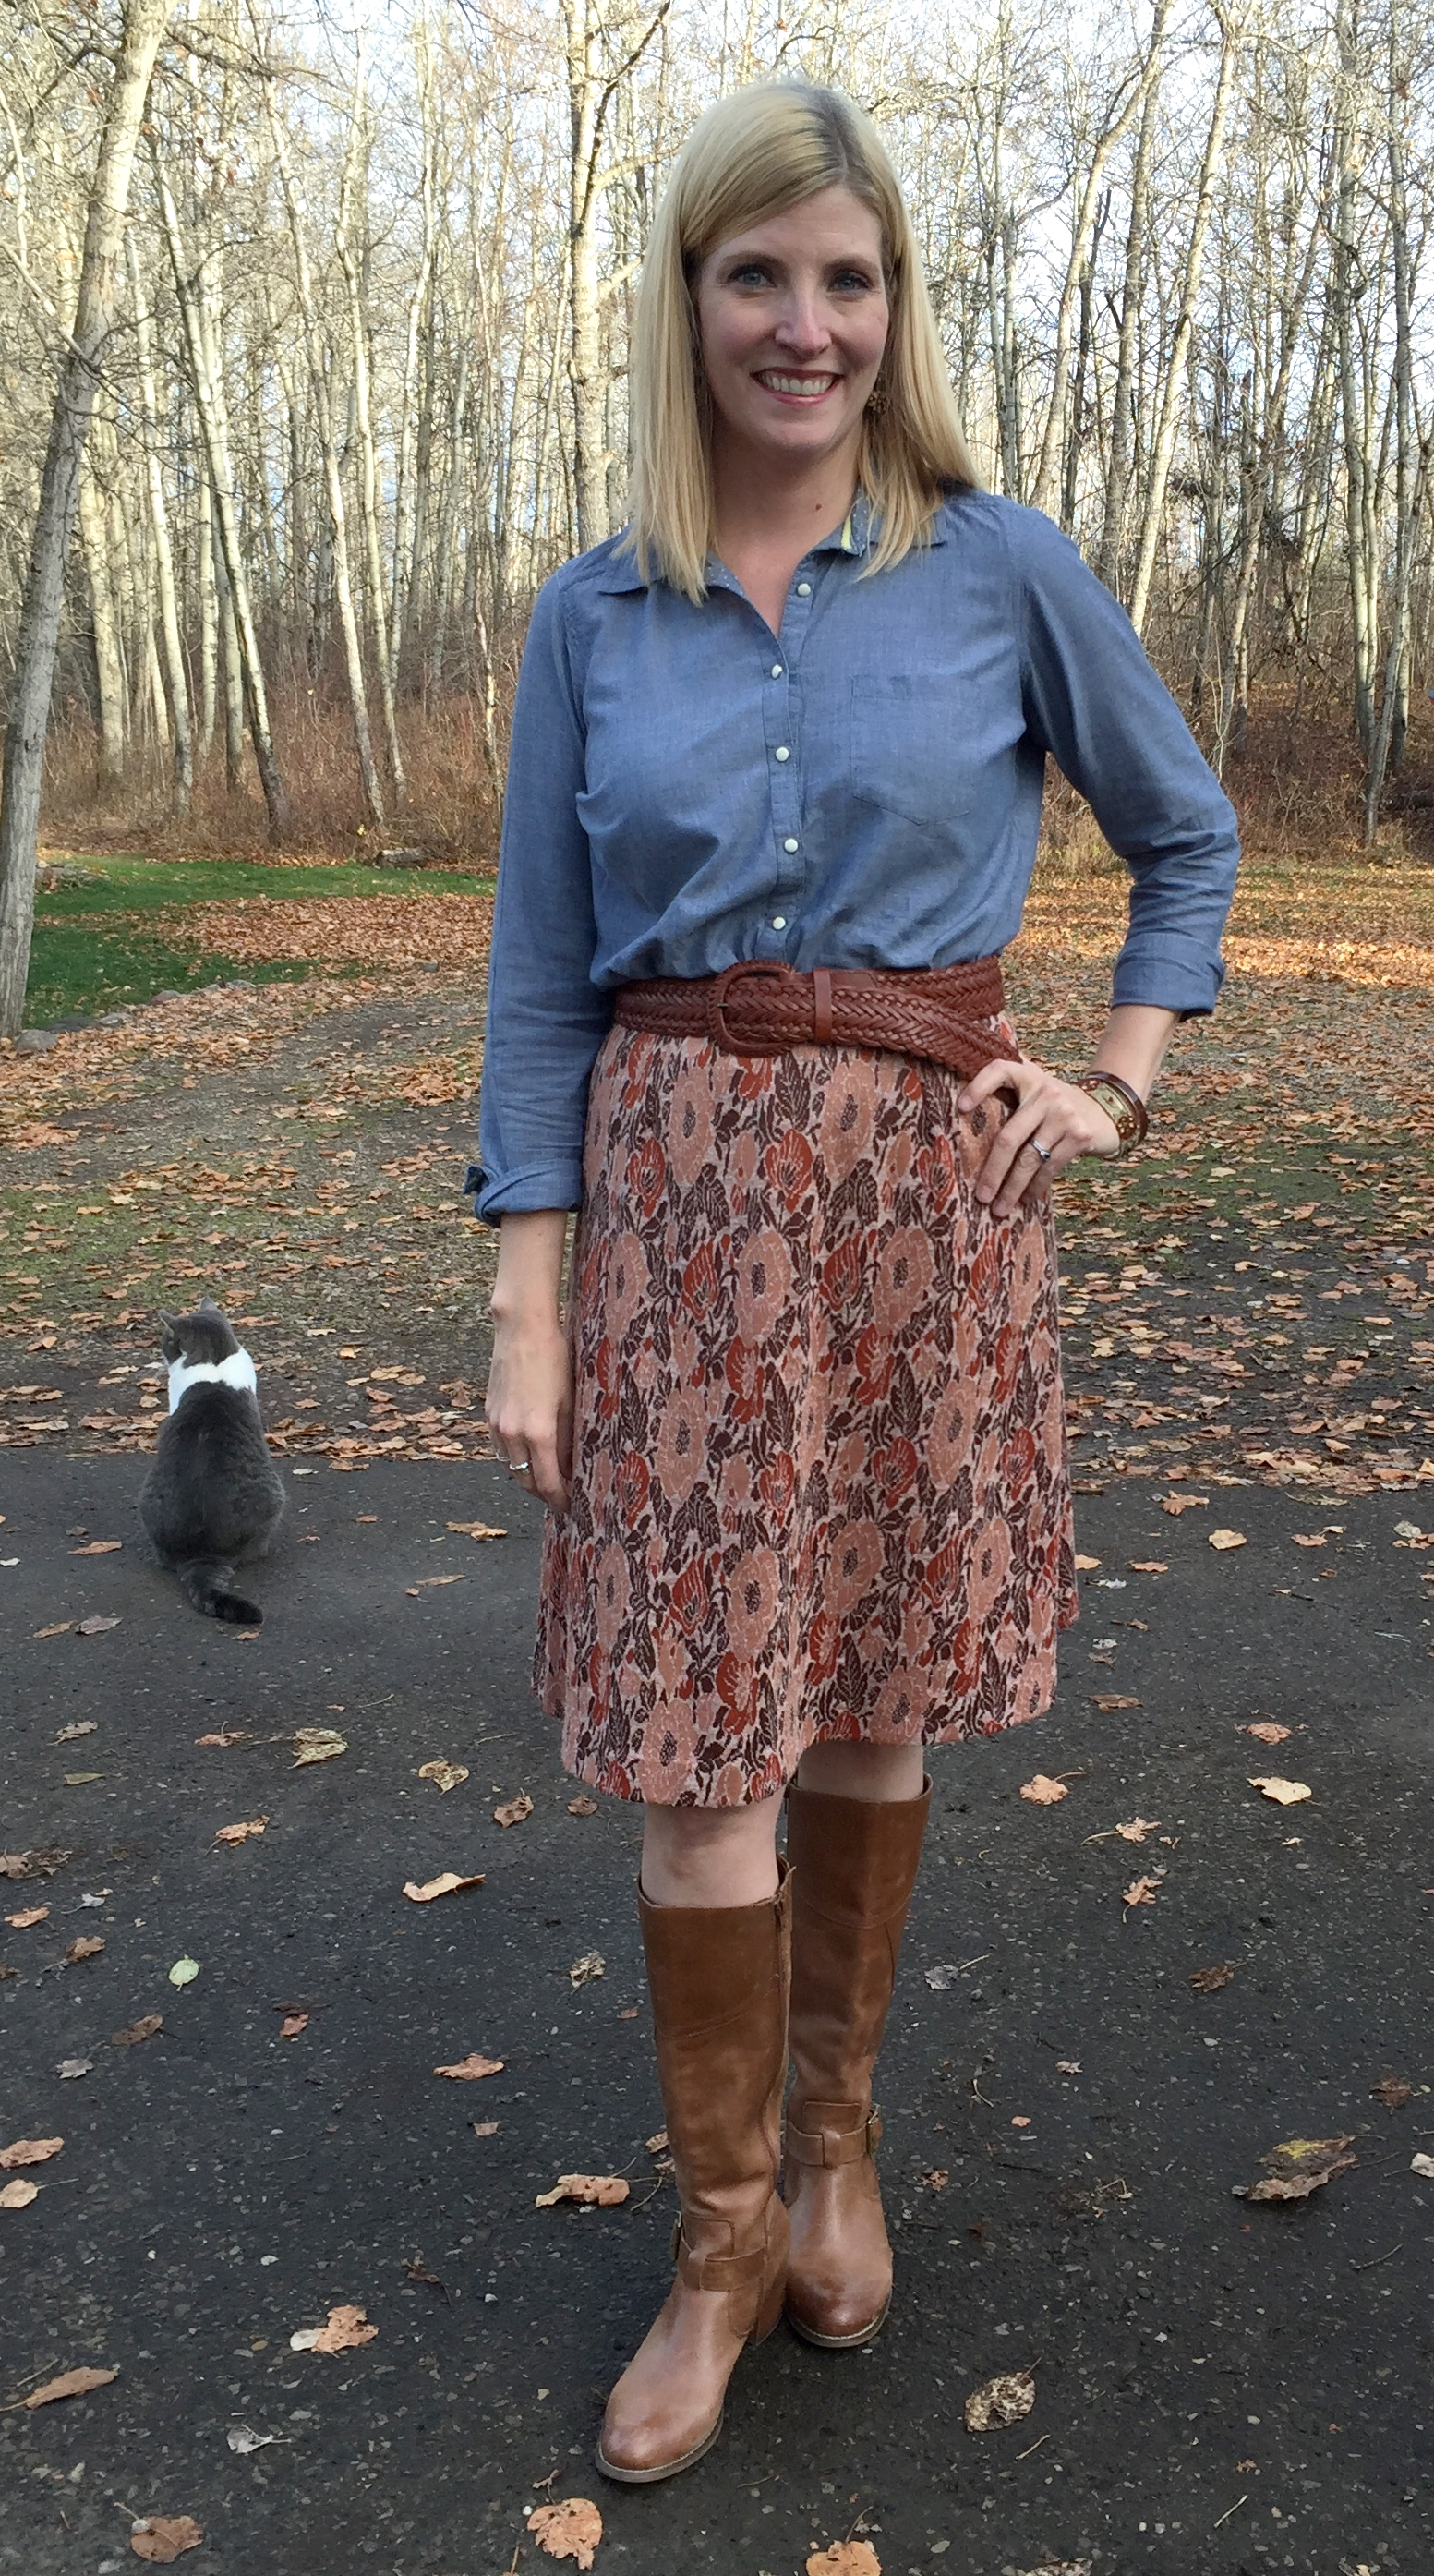 Chambray $6, leather belt  $4.20, vintage skirt $5, Miz Mooz boots $7.50 plus accessories from my collection.